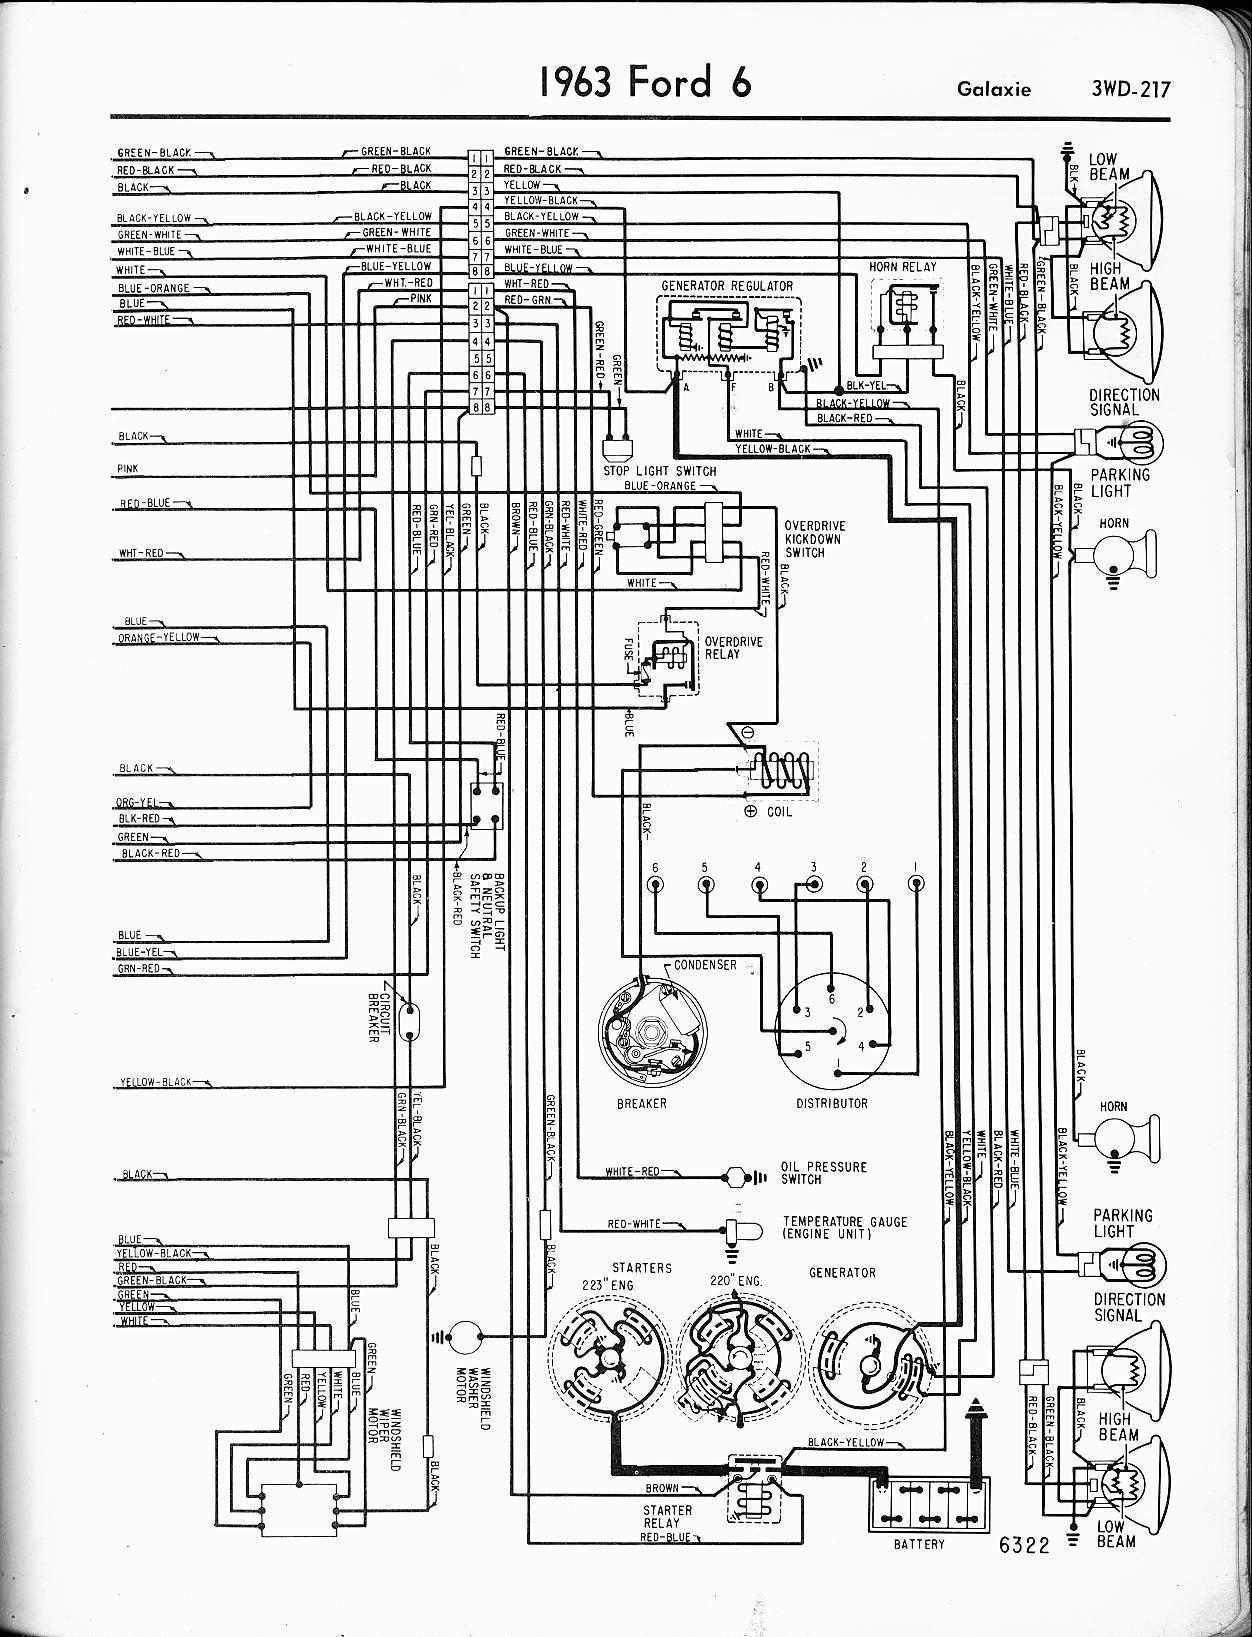 MWire5765 217 57 65 ford wiring diagrams 1964 ford galaxie wiring harness at soozxer.org